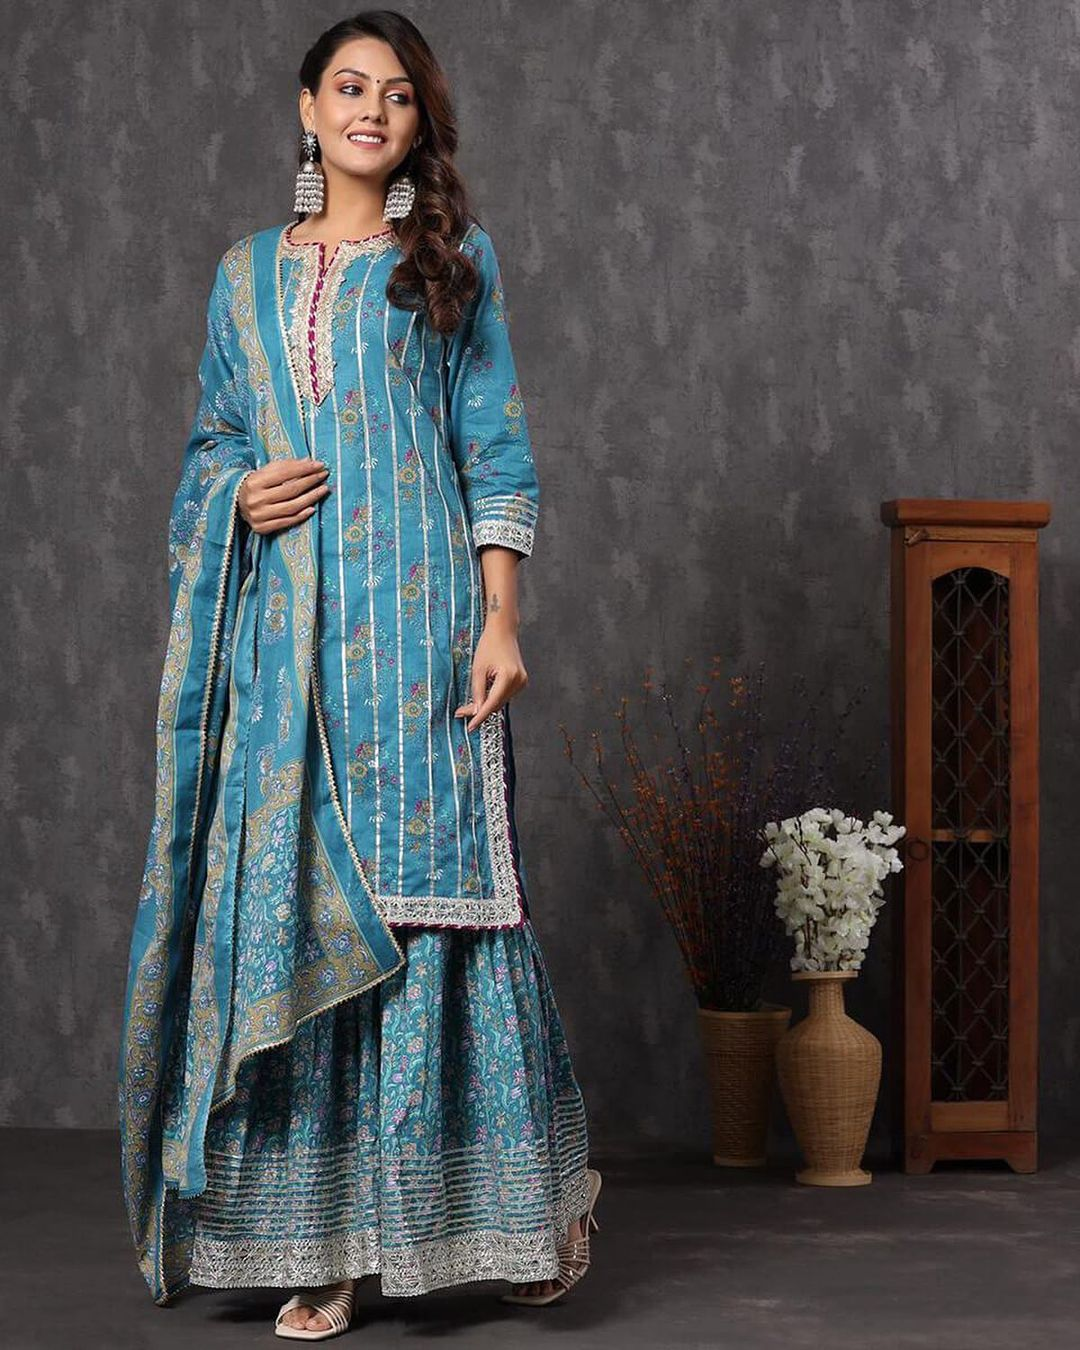 Discover Latest Sharara-Gharara Focused Labels to Create an Iconic Traditional Look